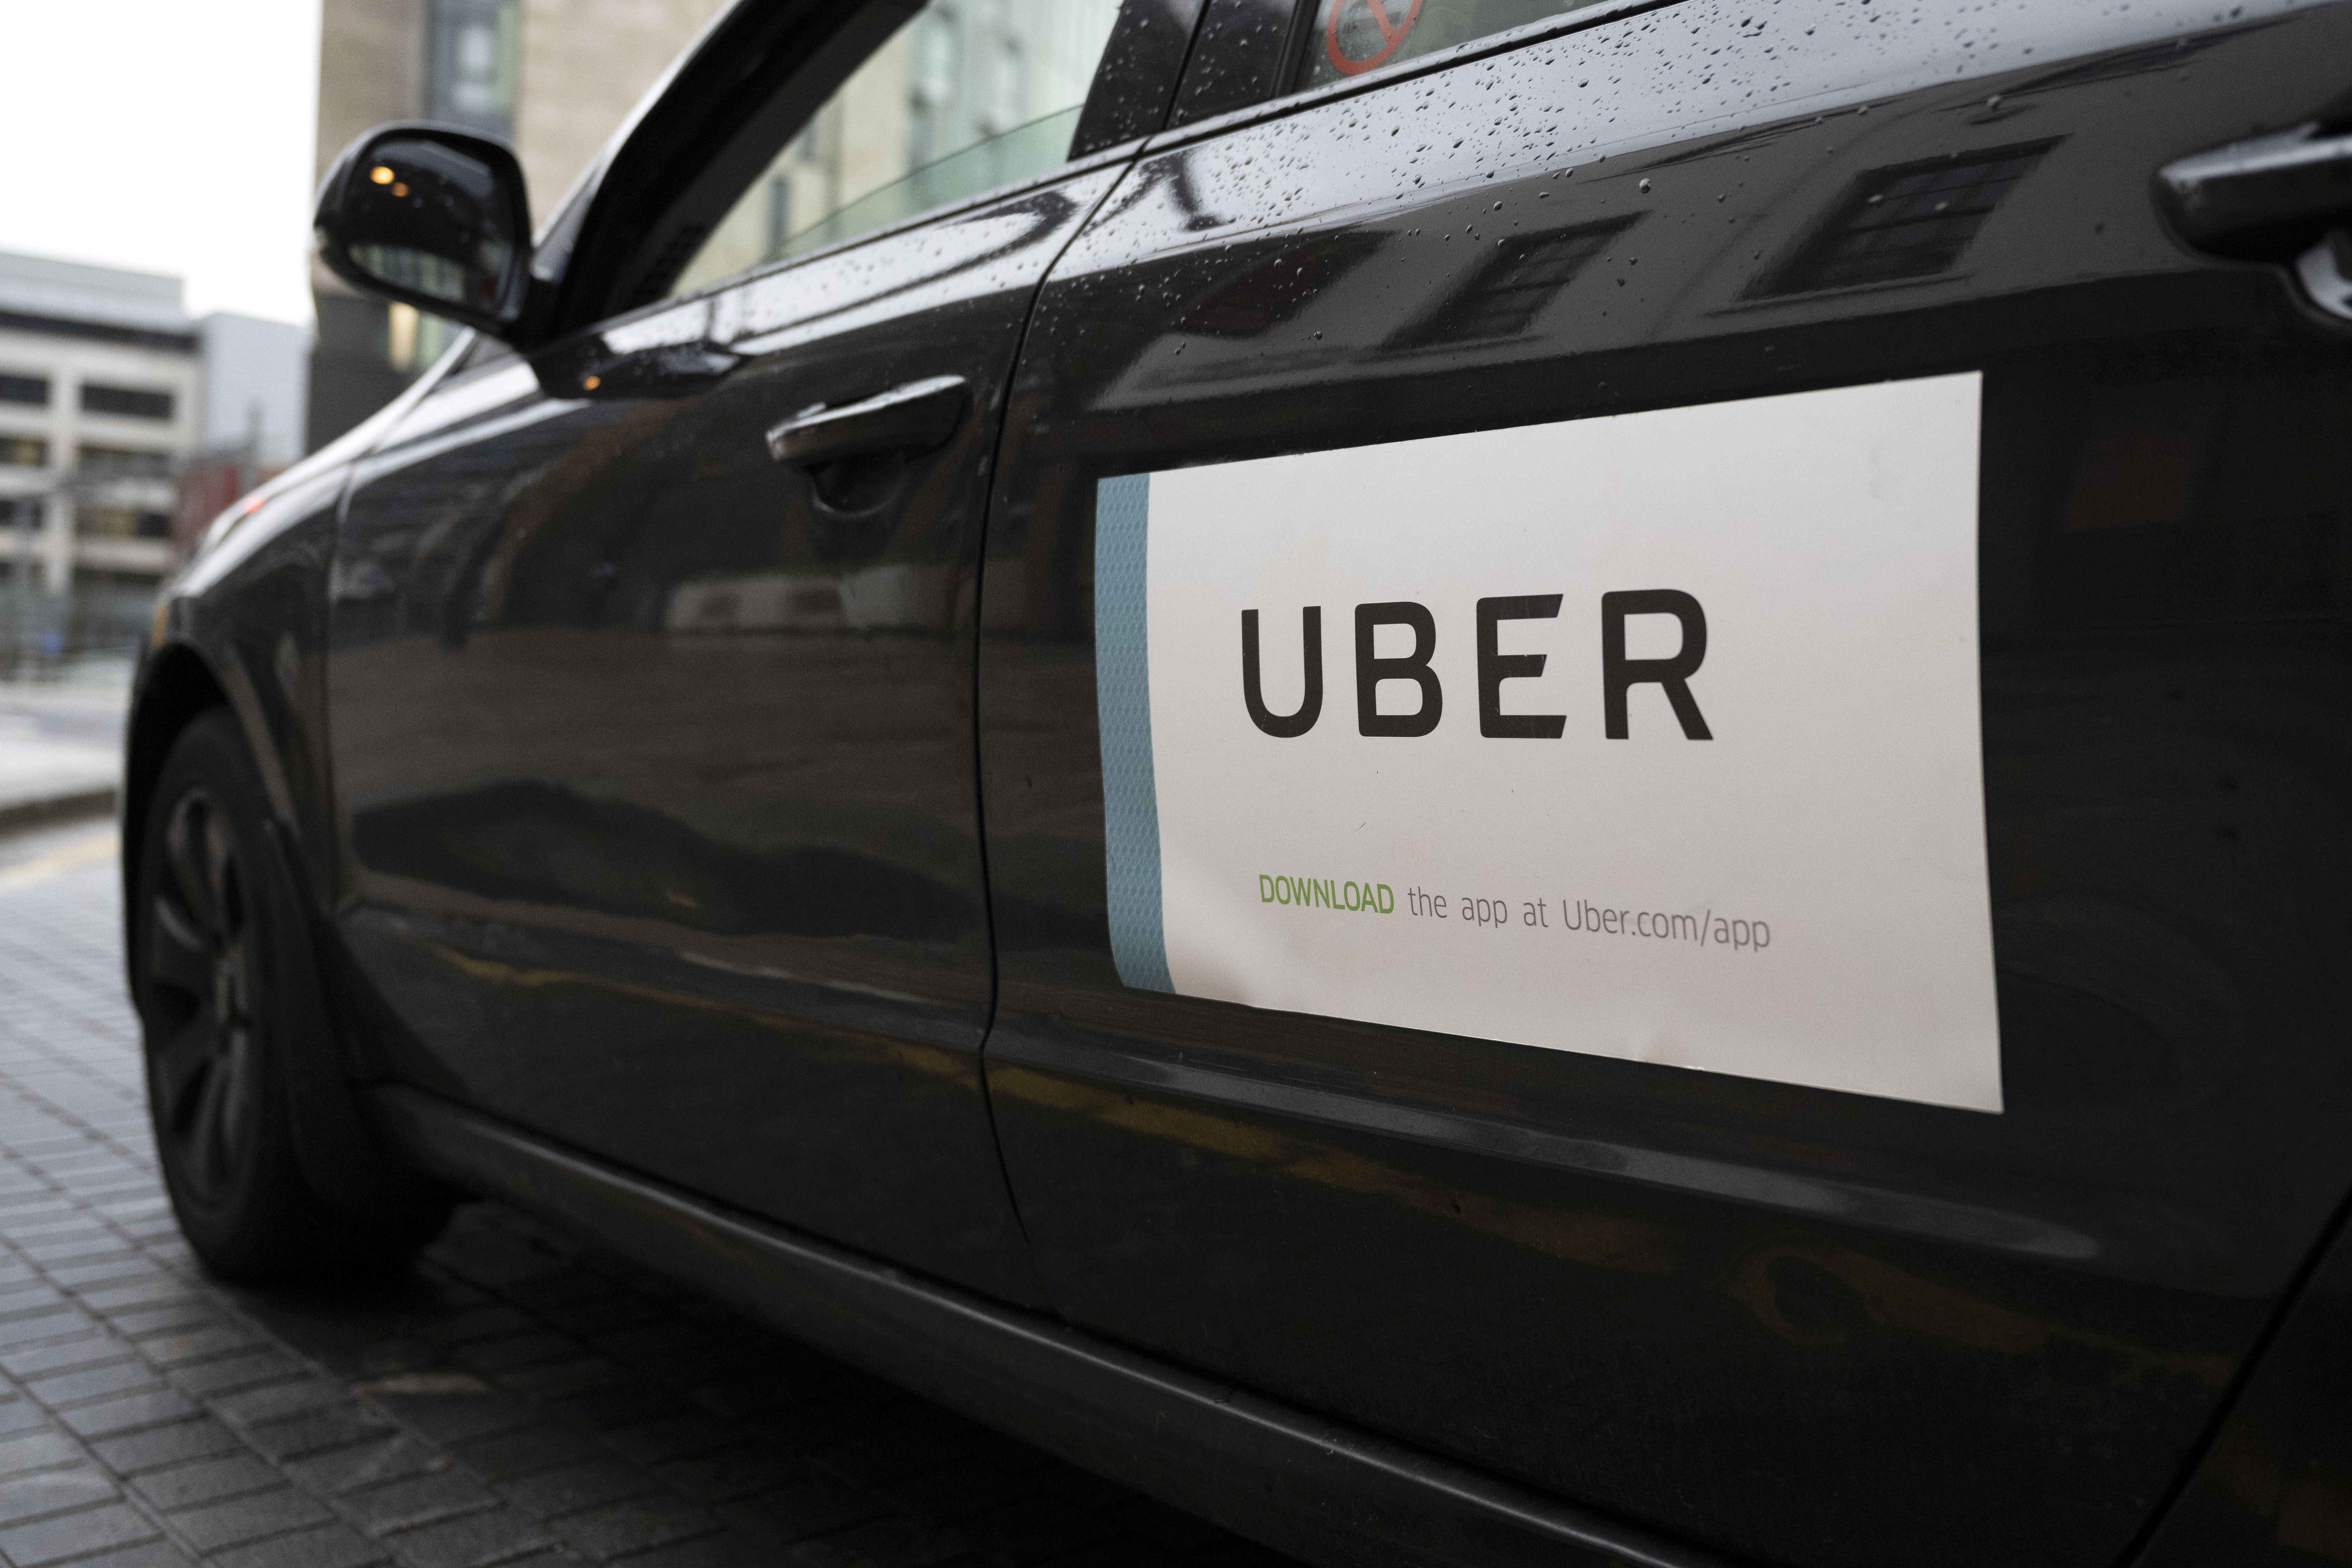 Uber Drivers Win Supreme Court Appeal To Be Considered Workers